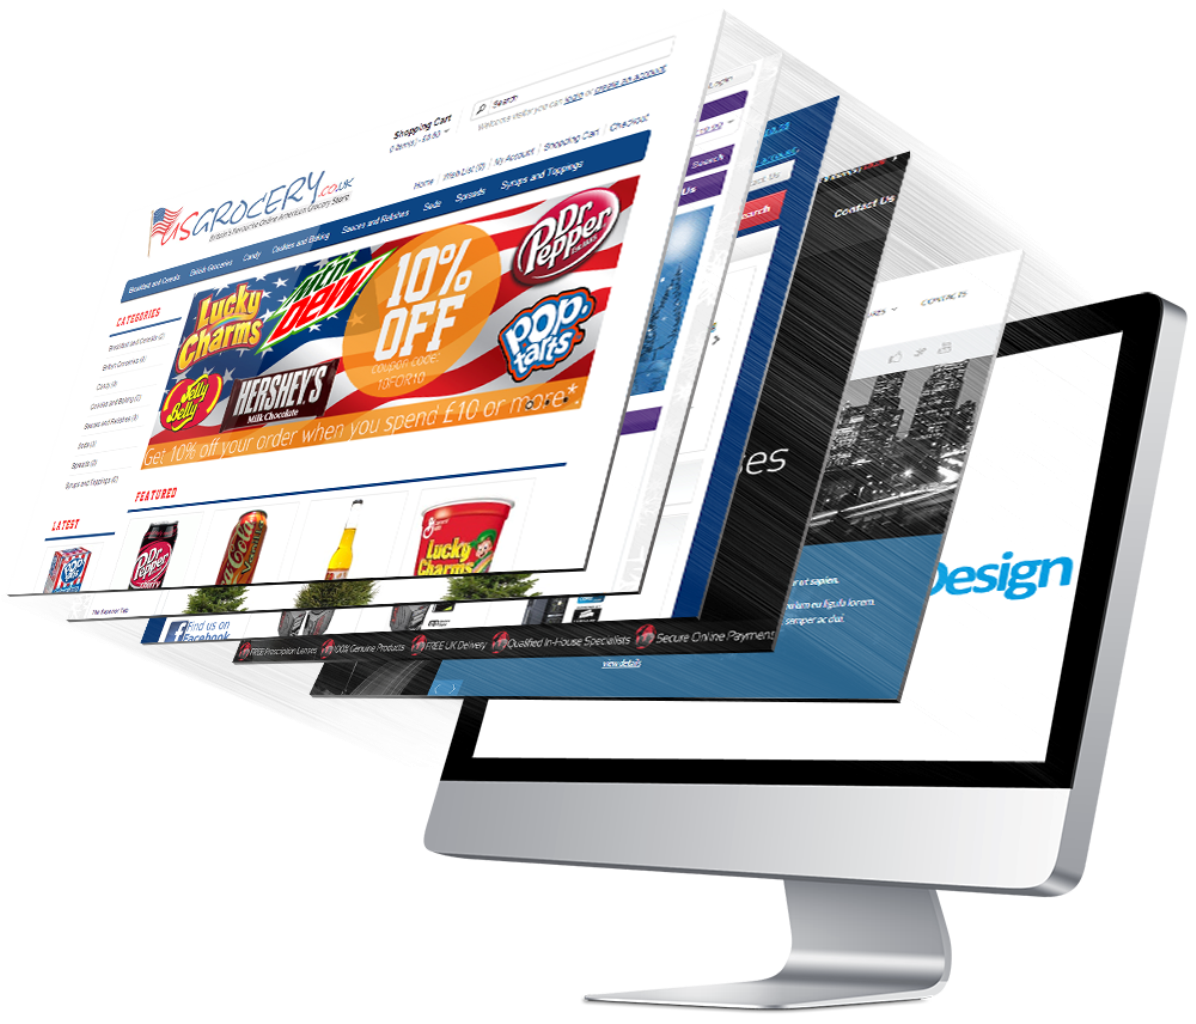 Technologynews Did You Know In An Ecommerce Website The Quality Of Product Image Plays A Vital R Web Design Company Web Design Services Web Design